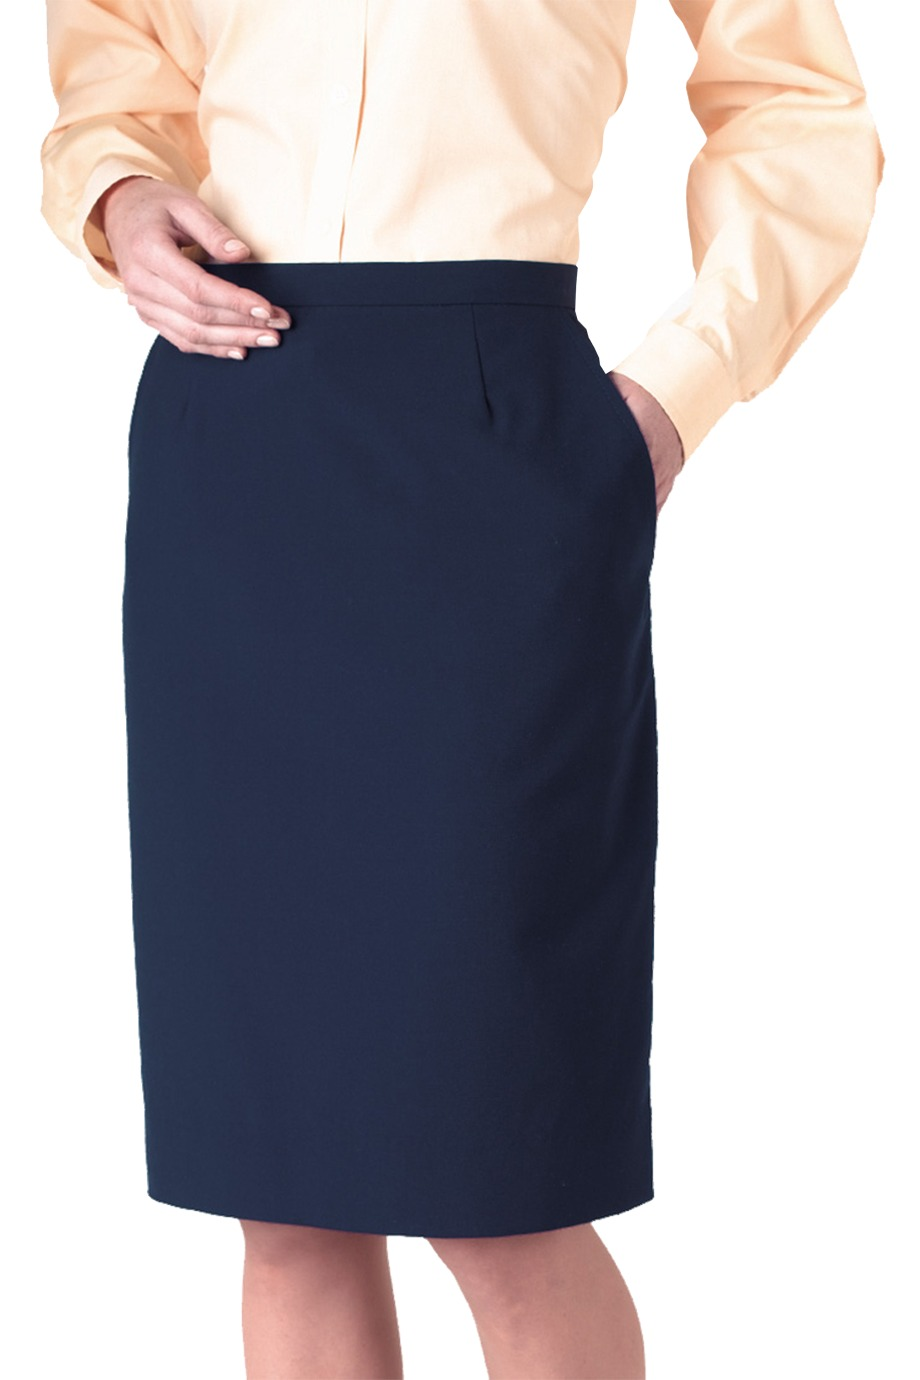 Edwards Garment 9731 - Women's All Cotton Skirt